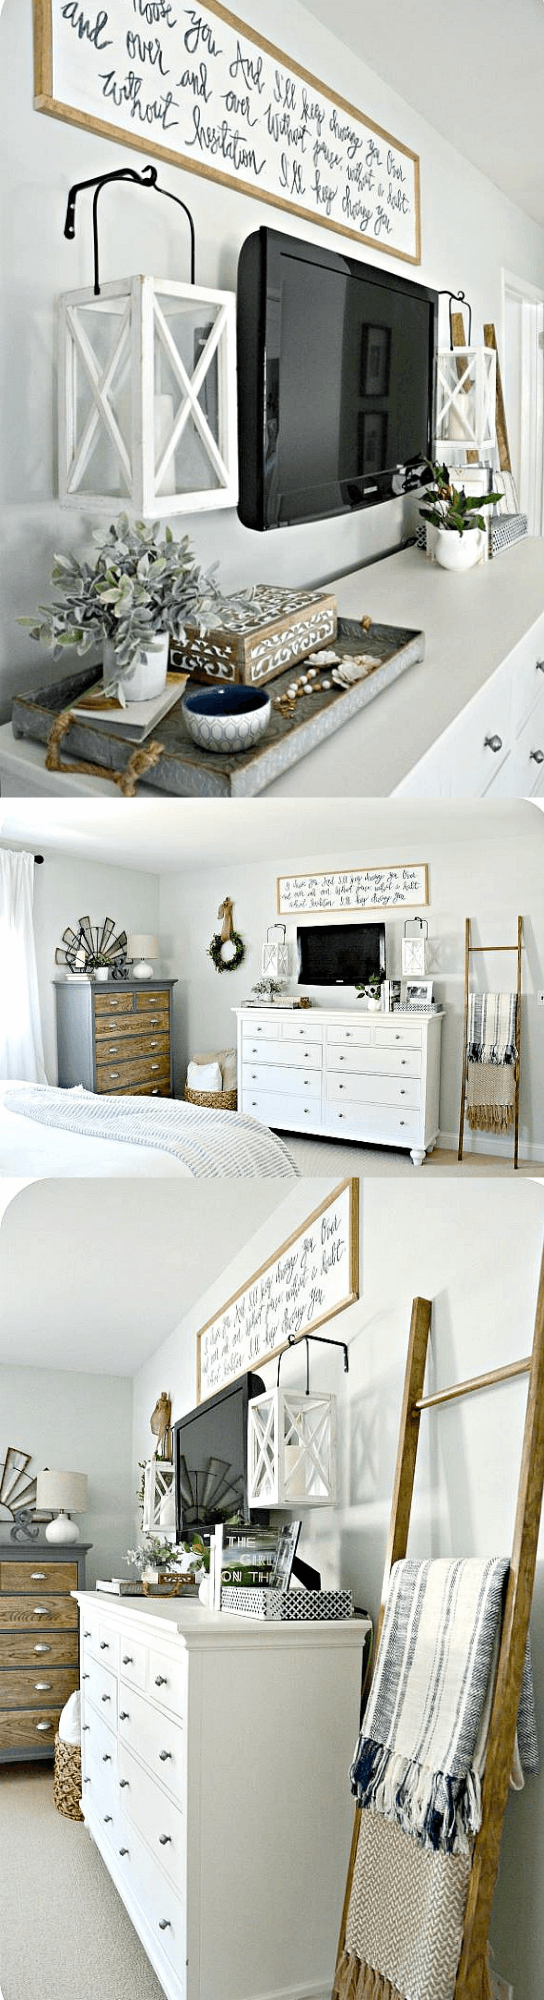 Master bedroom makeover: Lantern Wall Fixtures with Sign